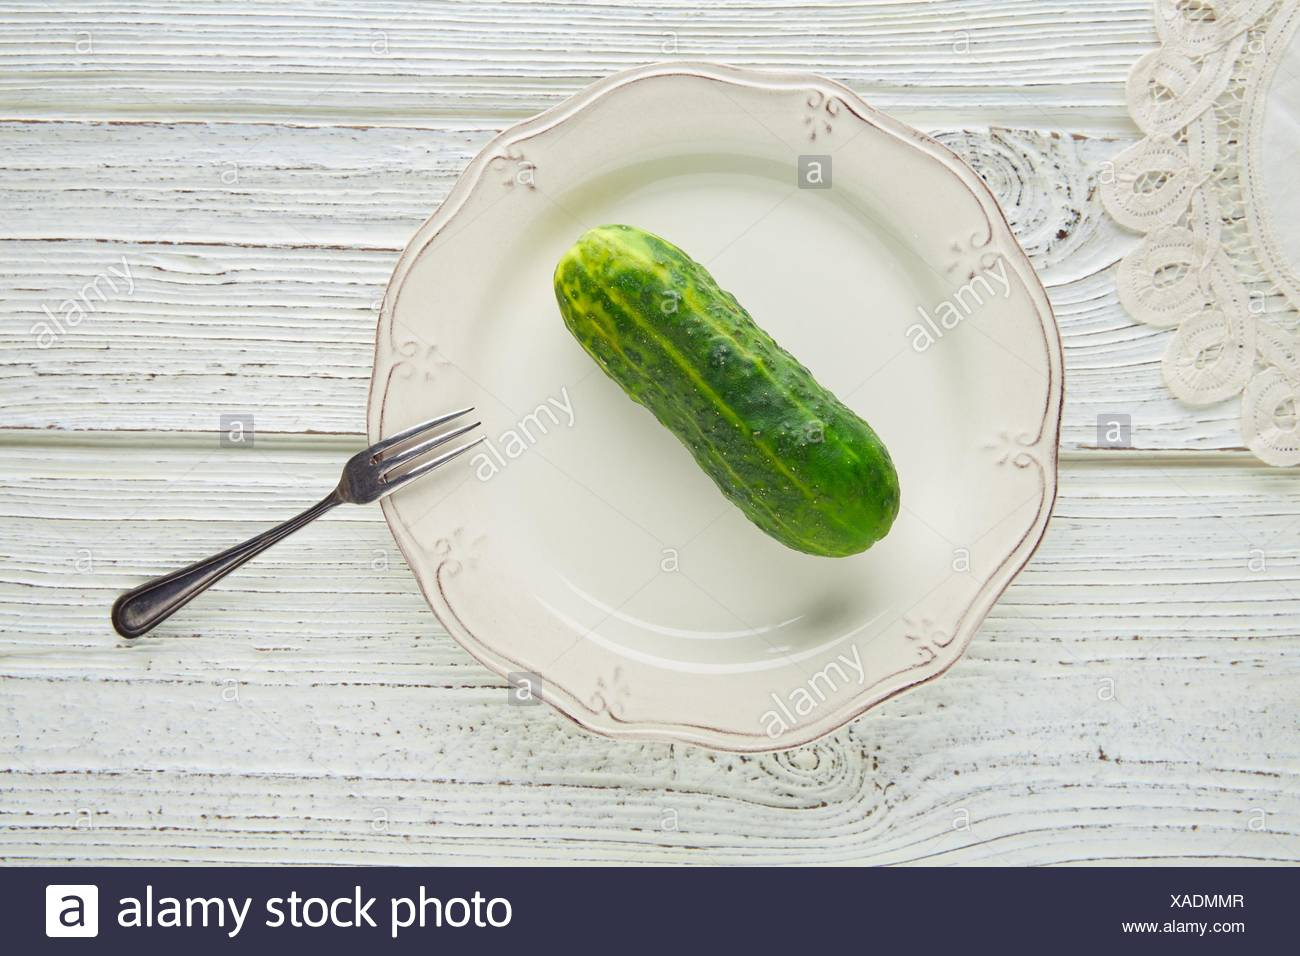 cucumber full in white plate minimalist concept of raw vegetarian food. - Stock Image